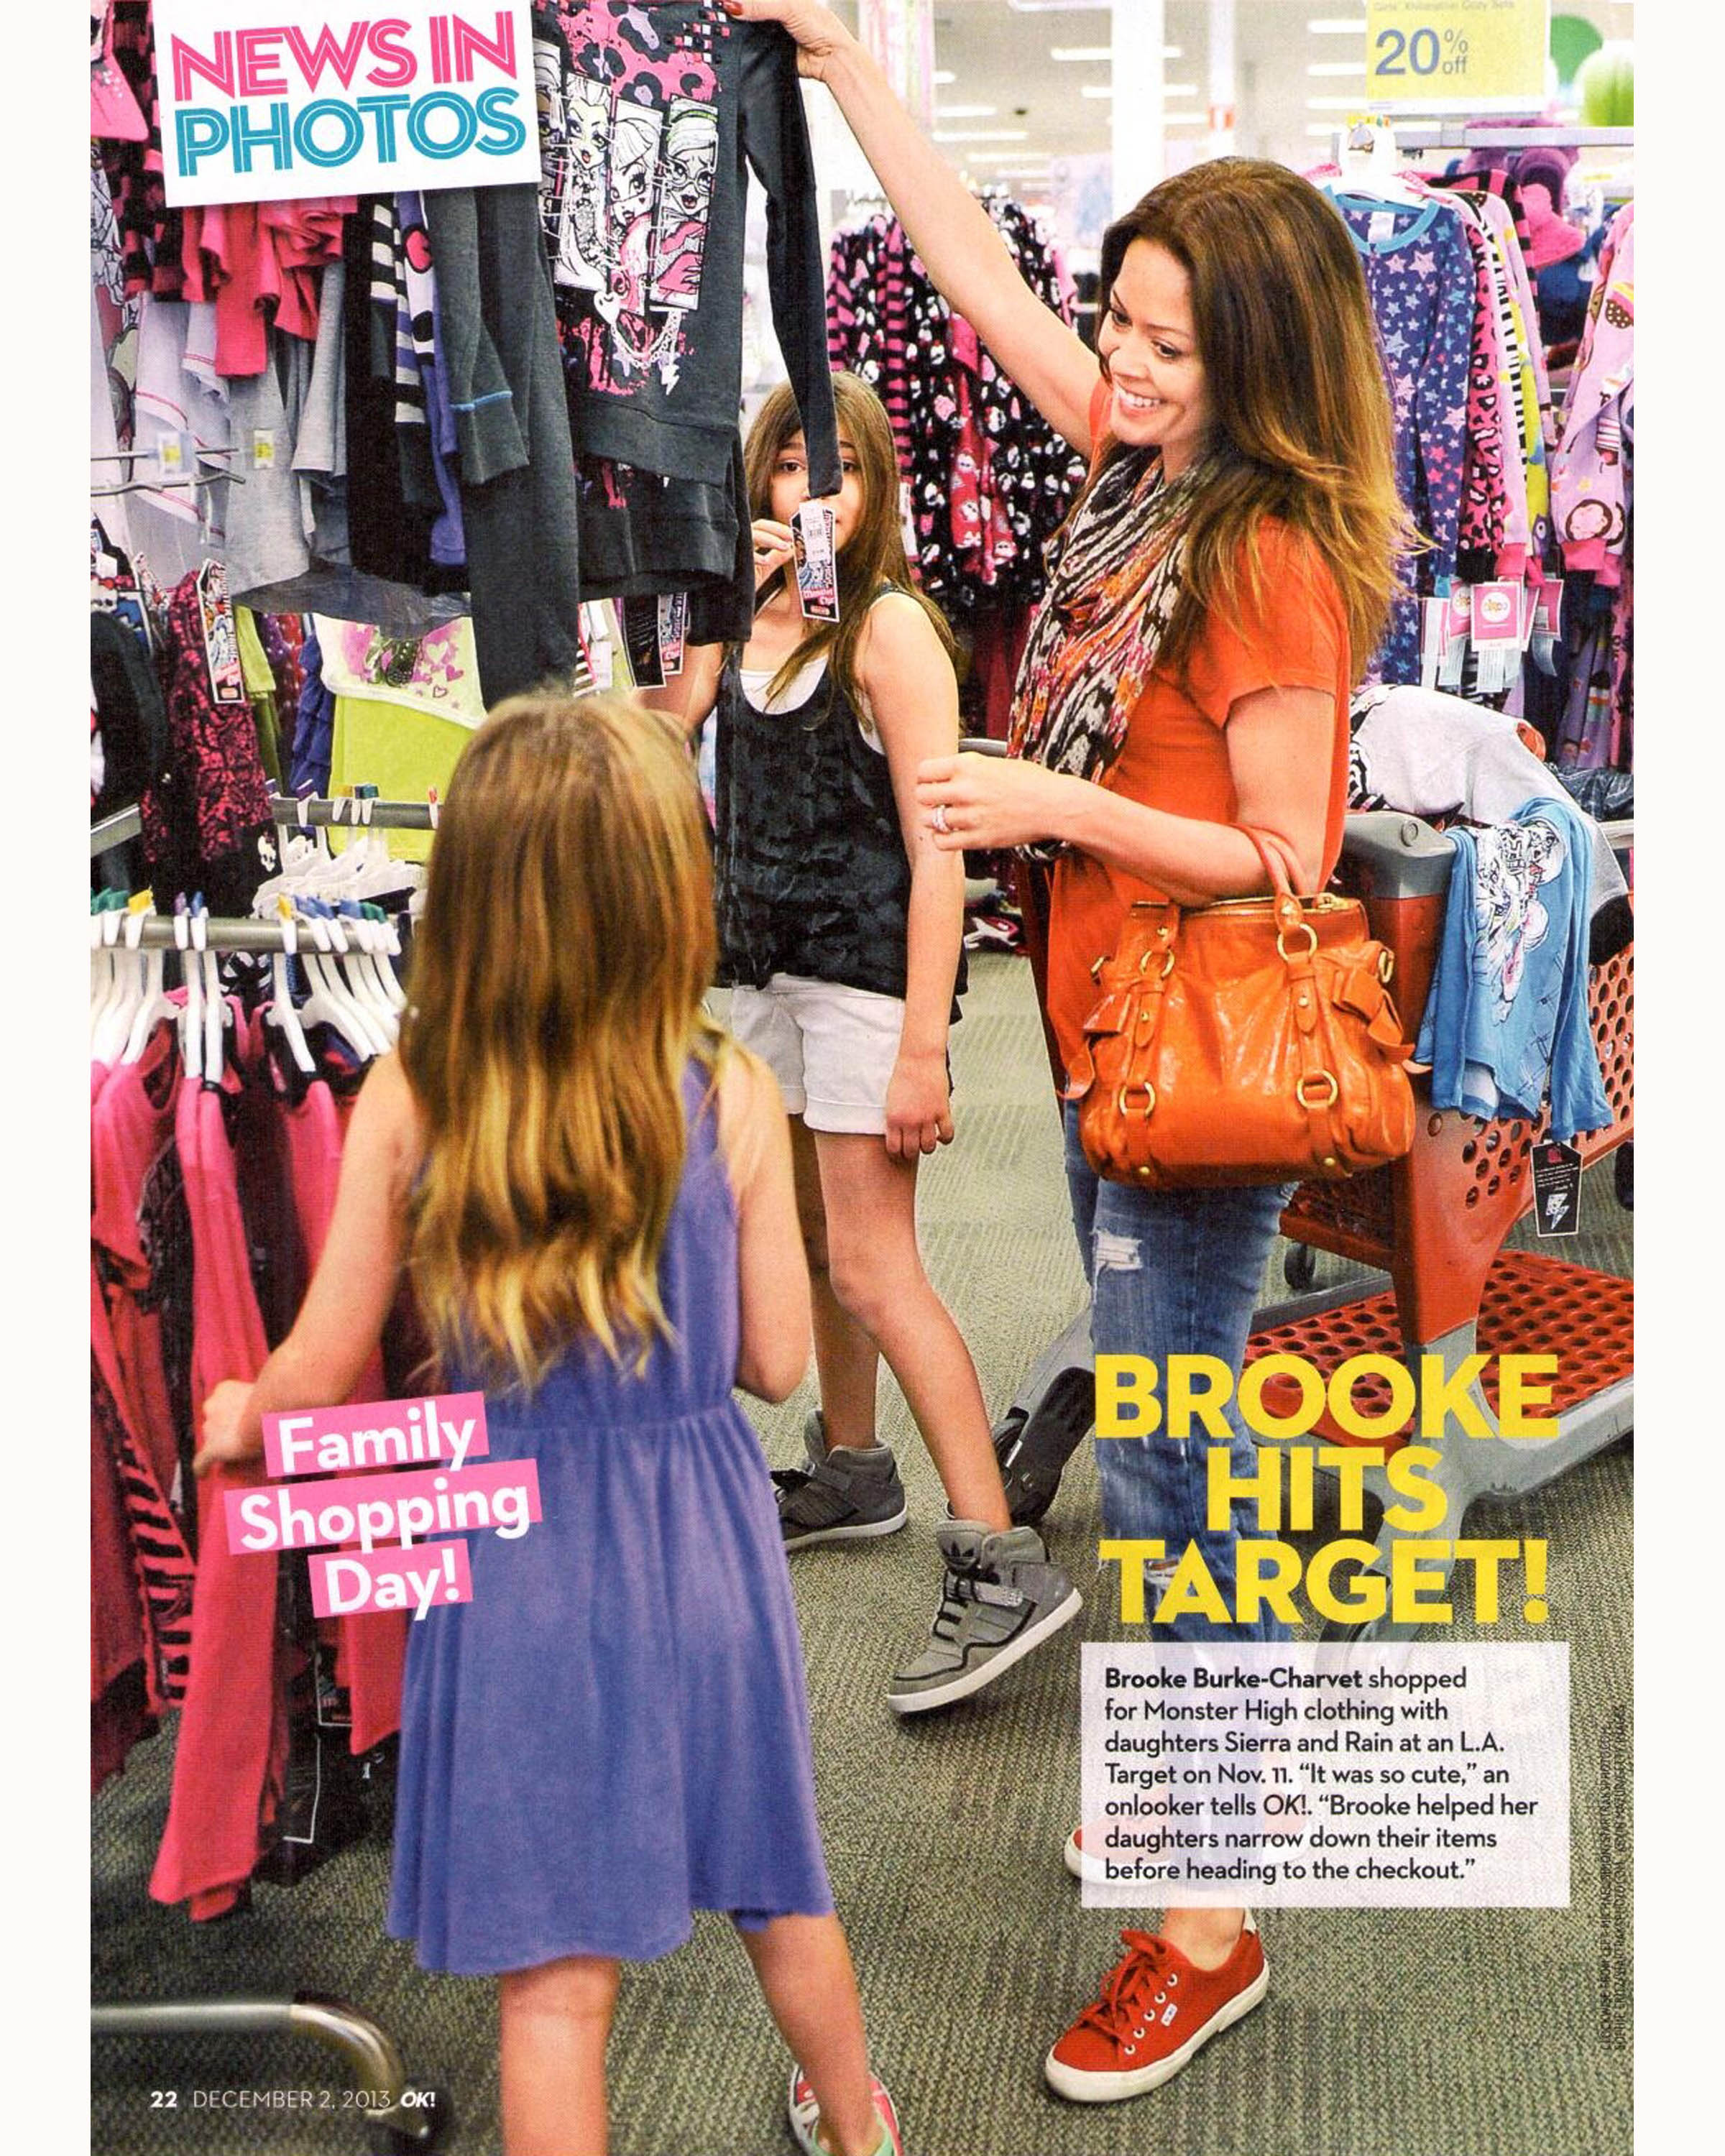 Brooke Burke for Monsters Chic in OK Magazine (use with photos).jpg